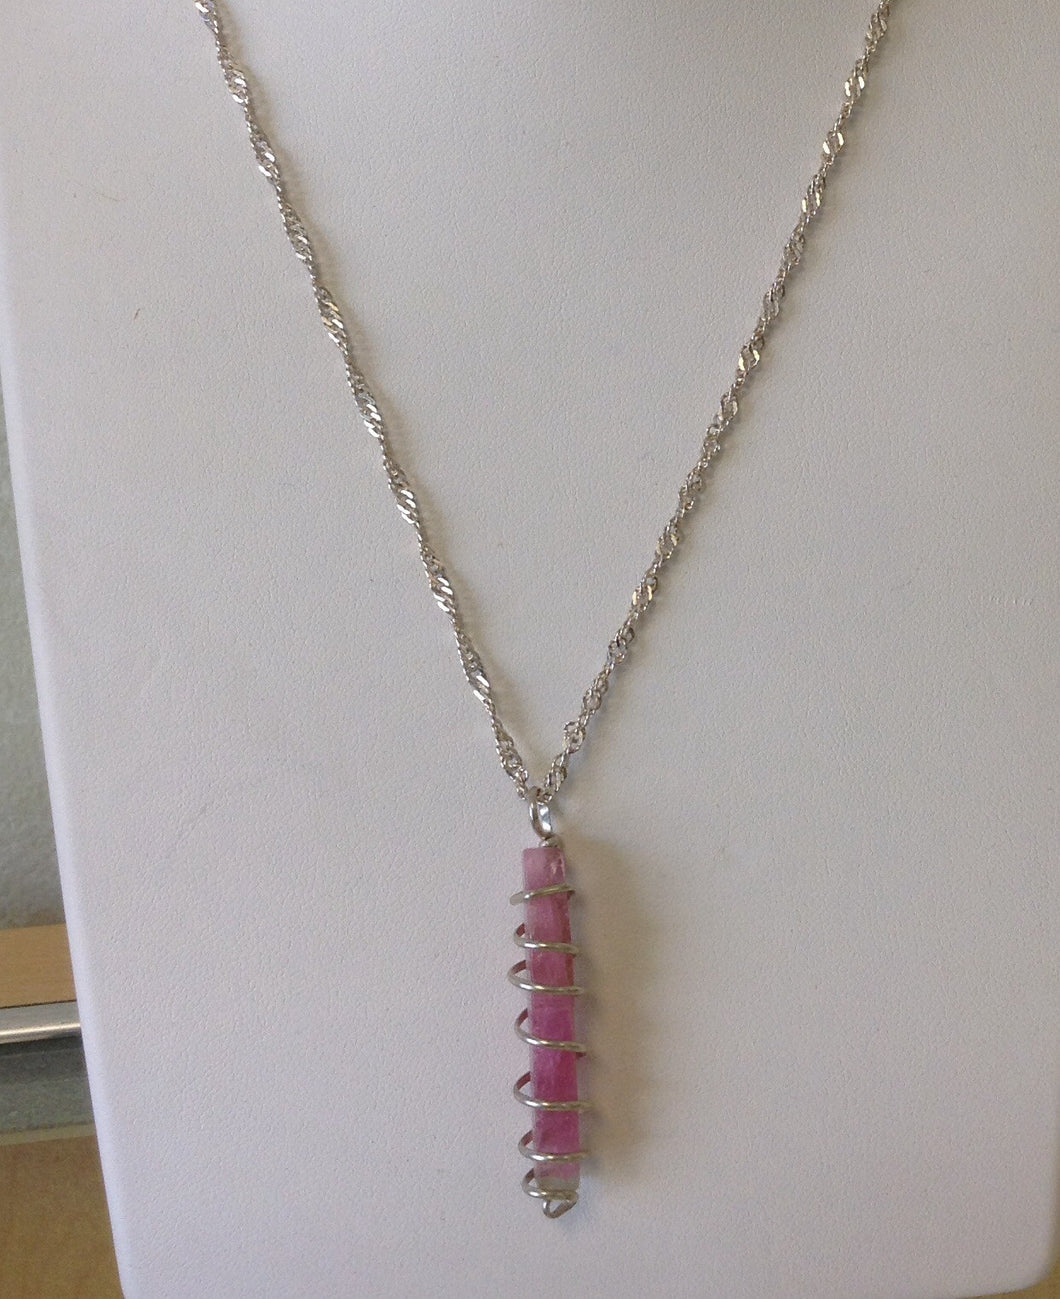 Maine Pink Tourmaline Spiral Wrapped Necklace - Lively Accents